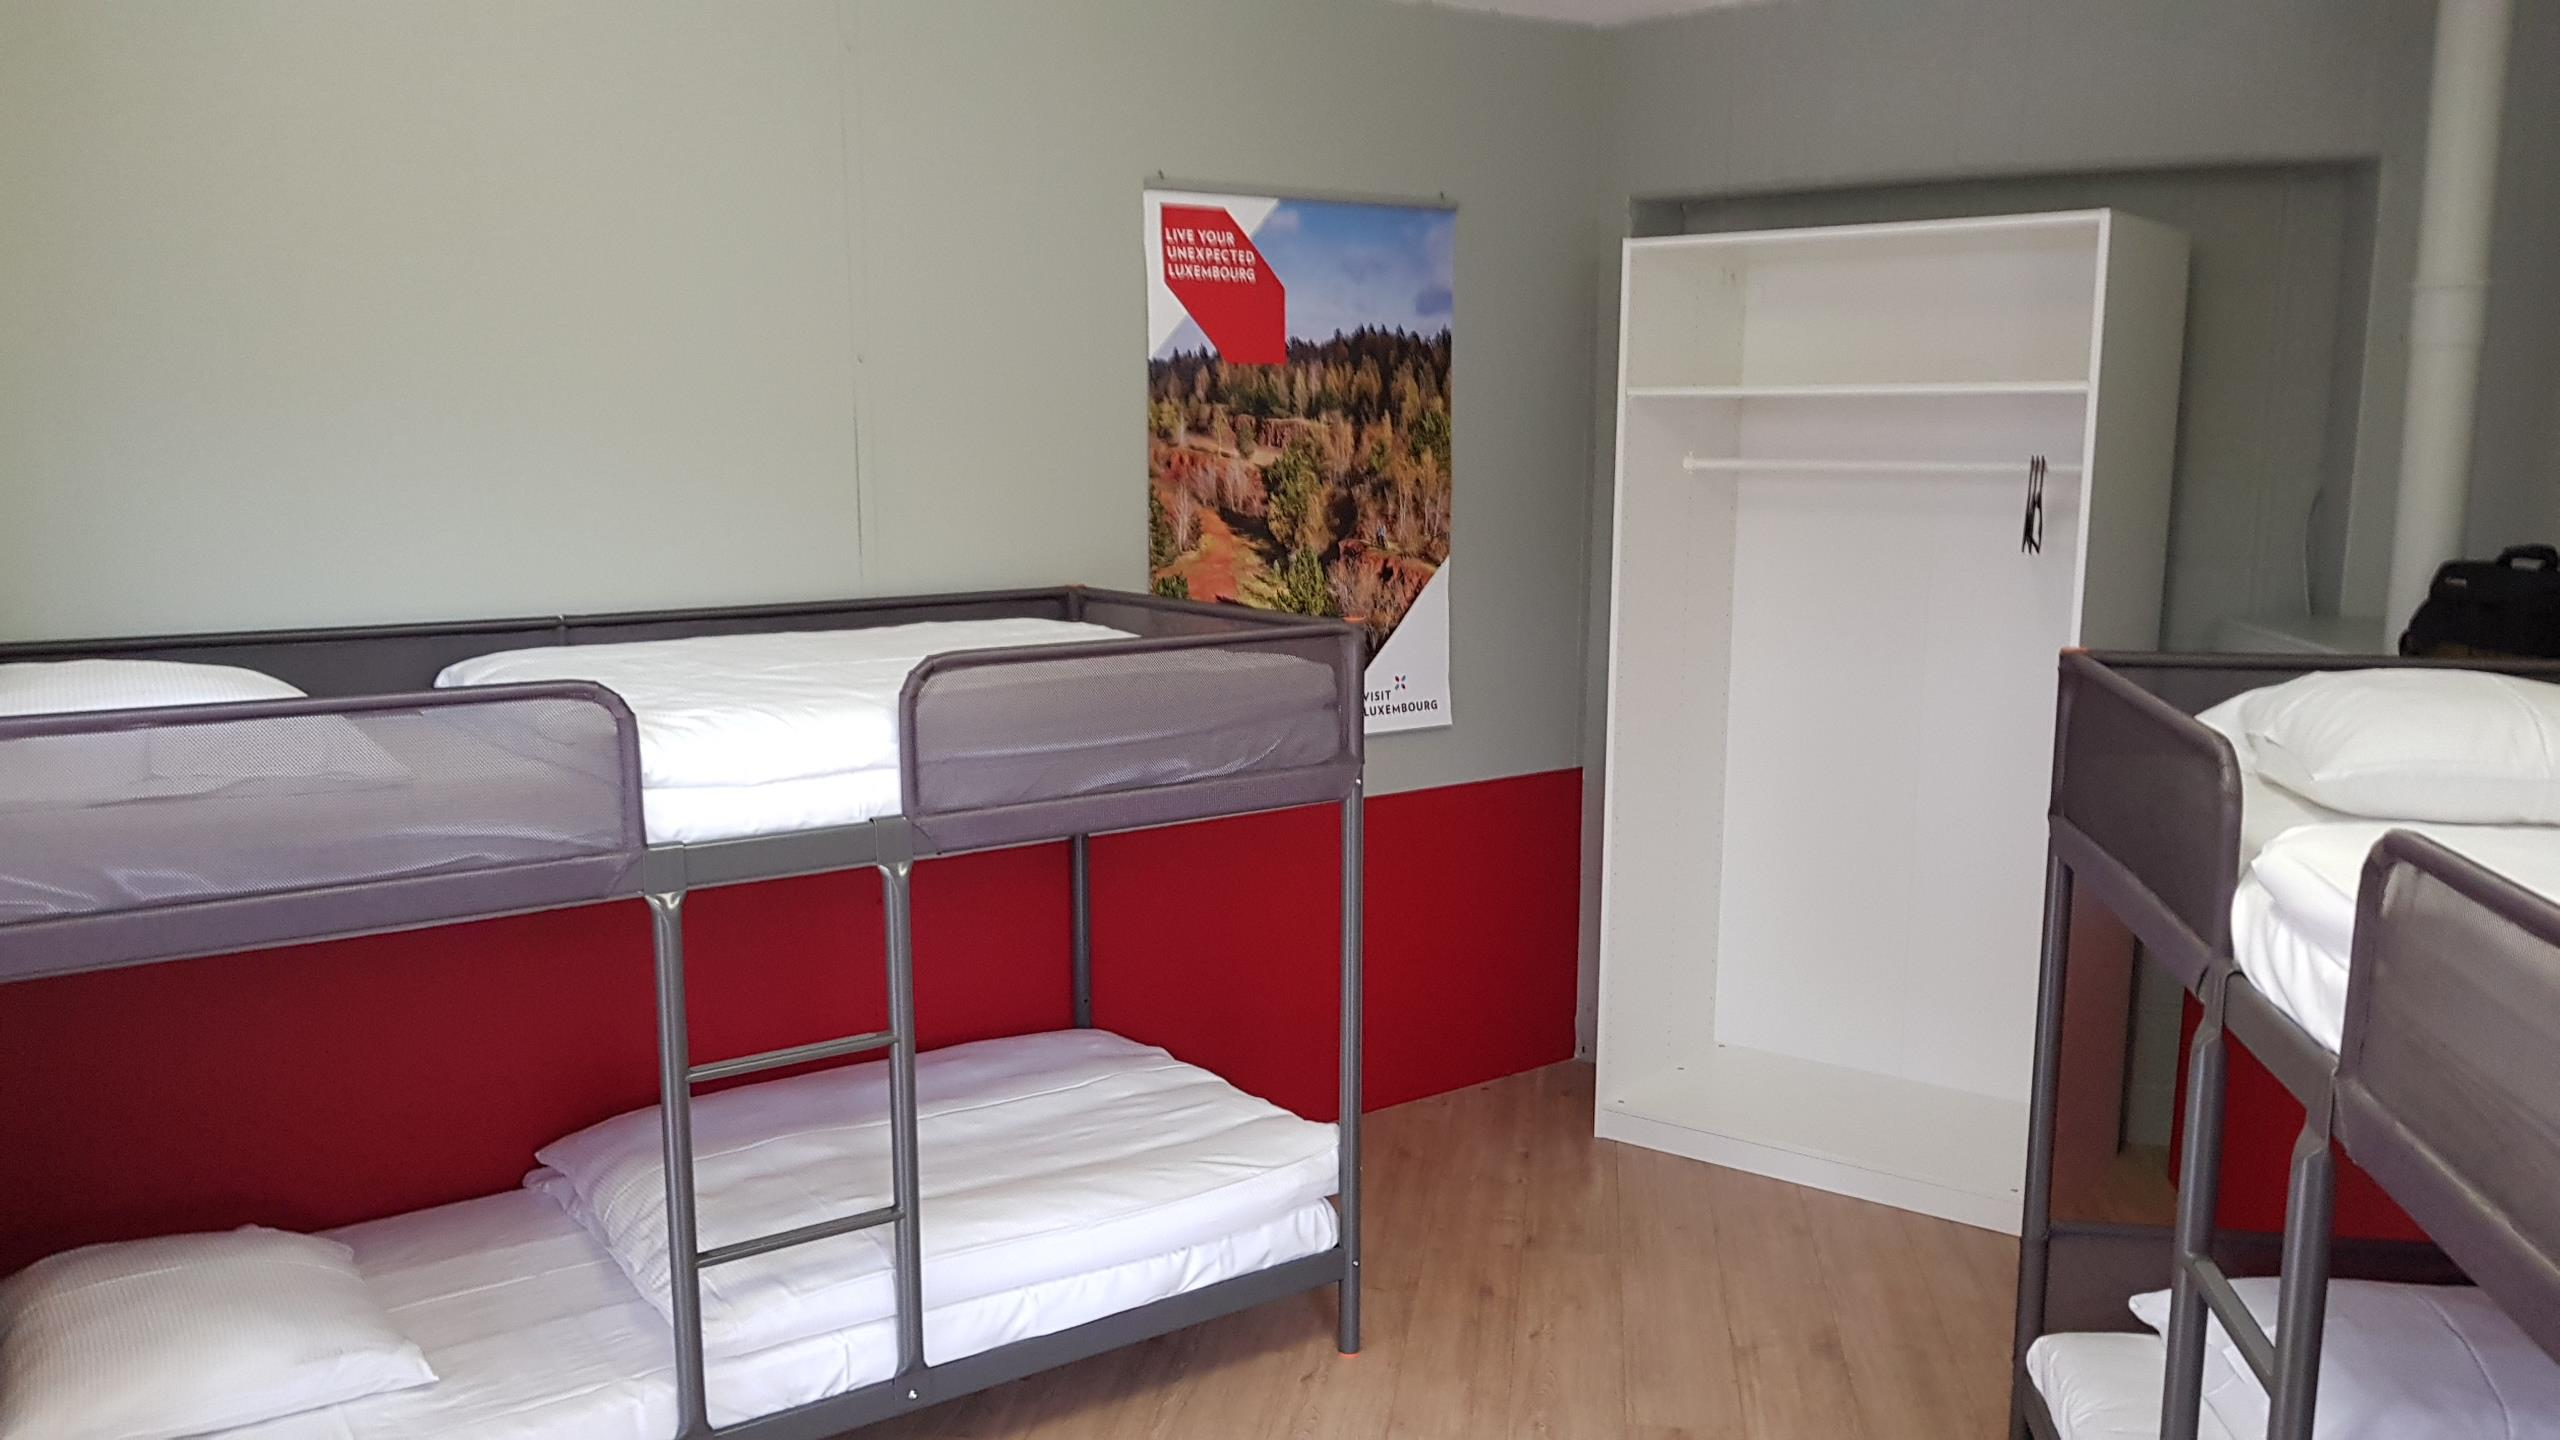 Bedroom - Room With Single Beds And Bunk Beds Max. 3 Days - Camping Troisvierges